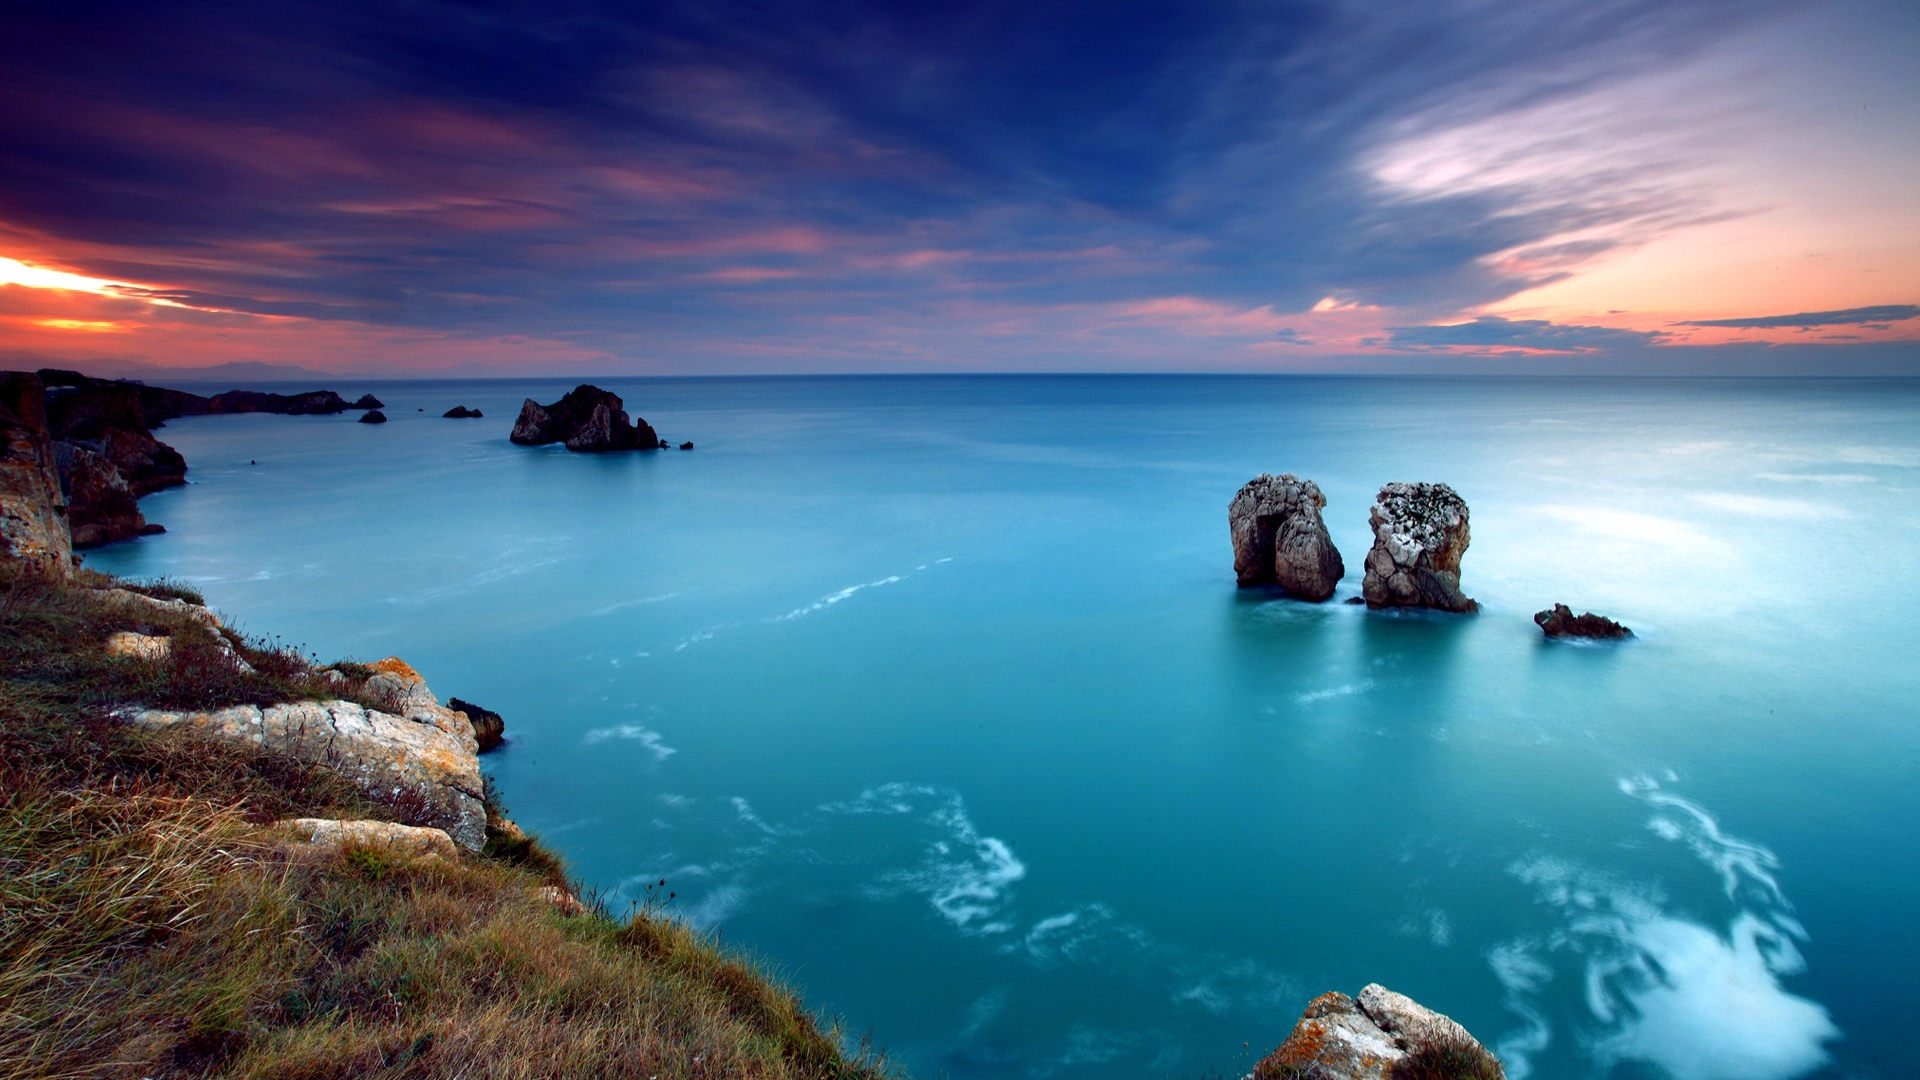 Ocean View Full HD Desktop Wallpapers 1080p 1920x1080